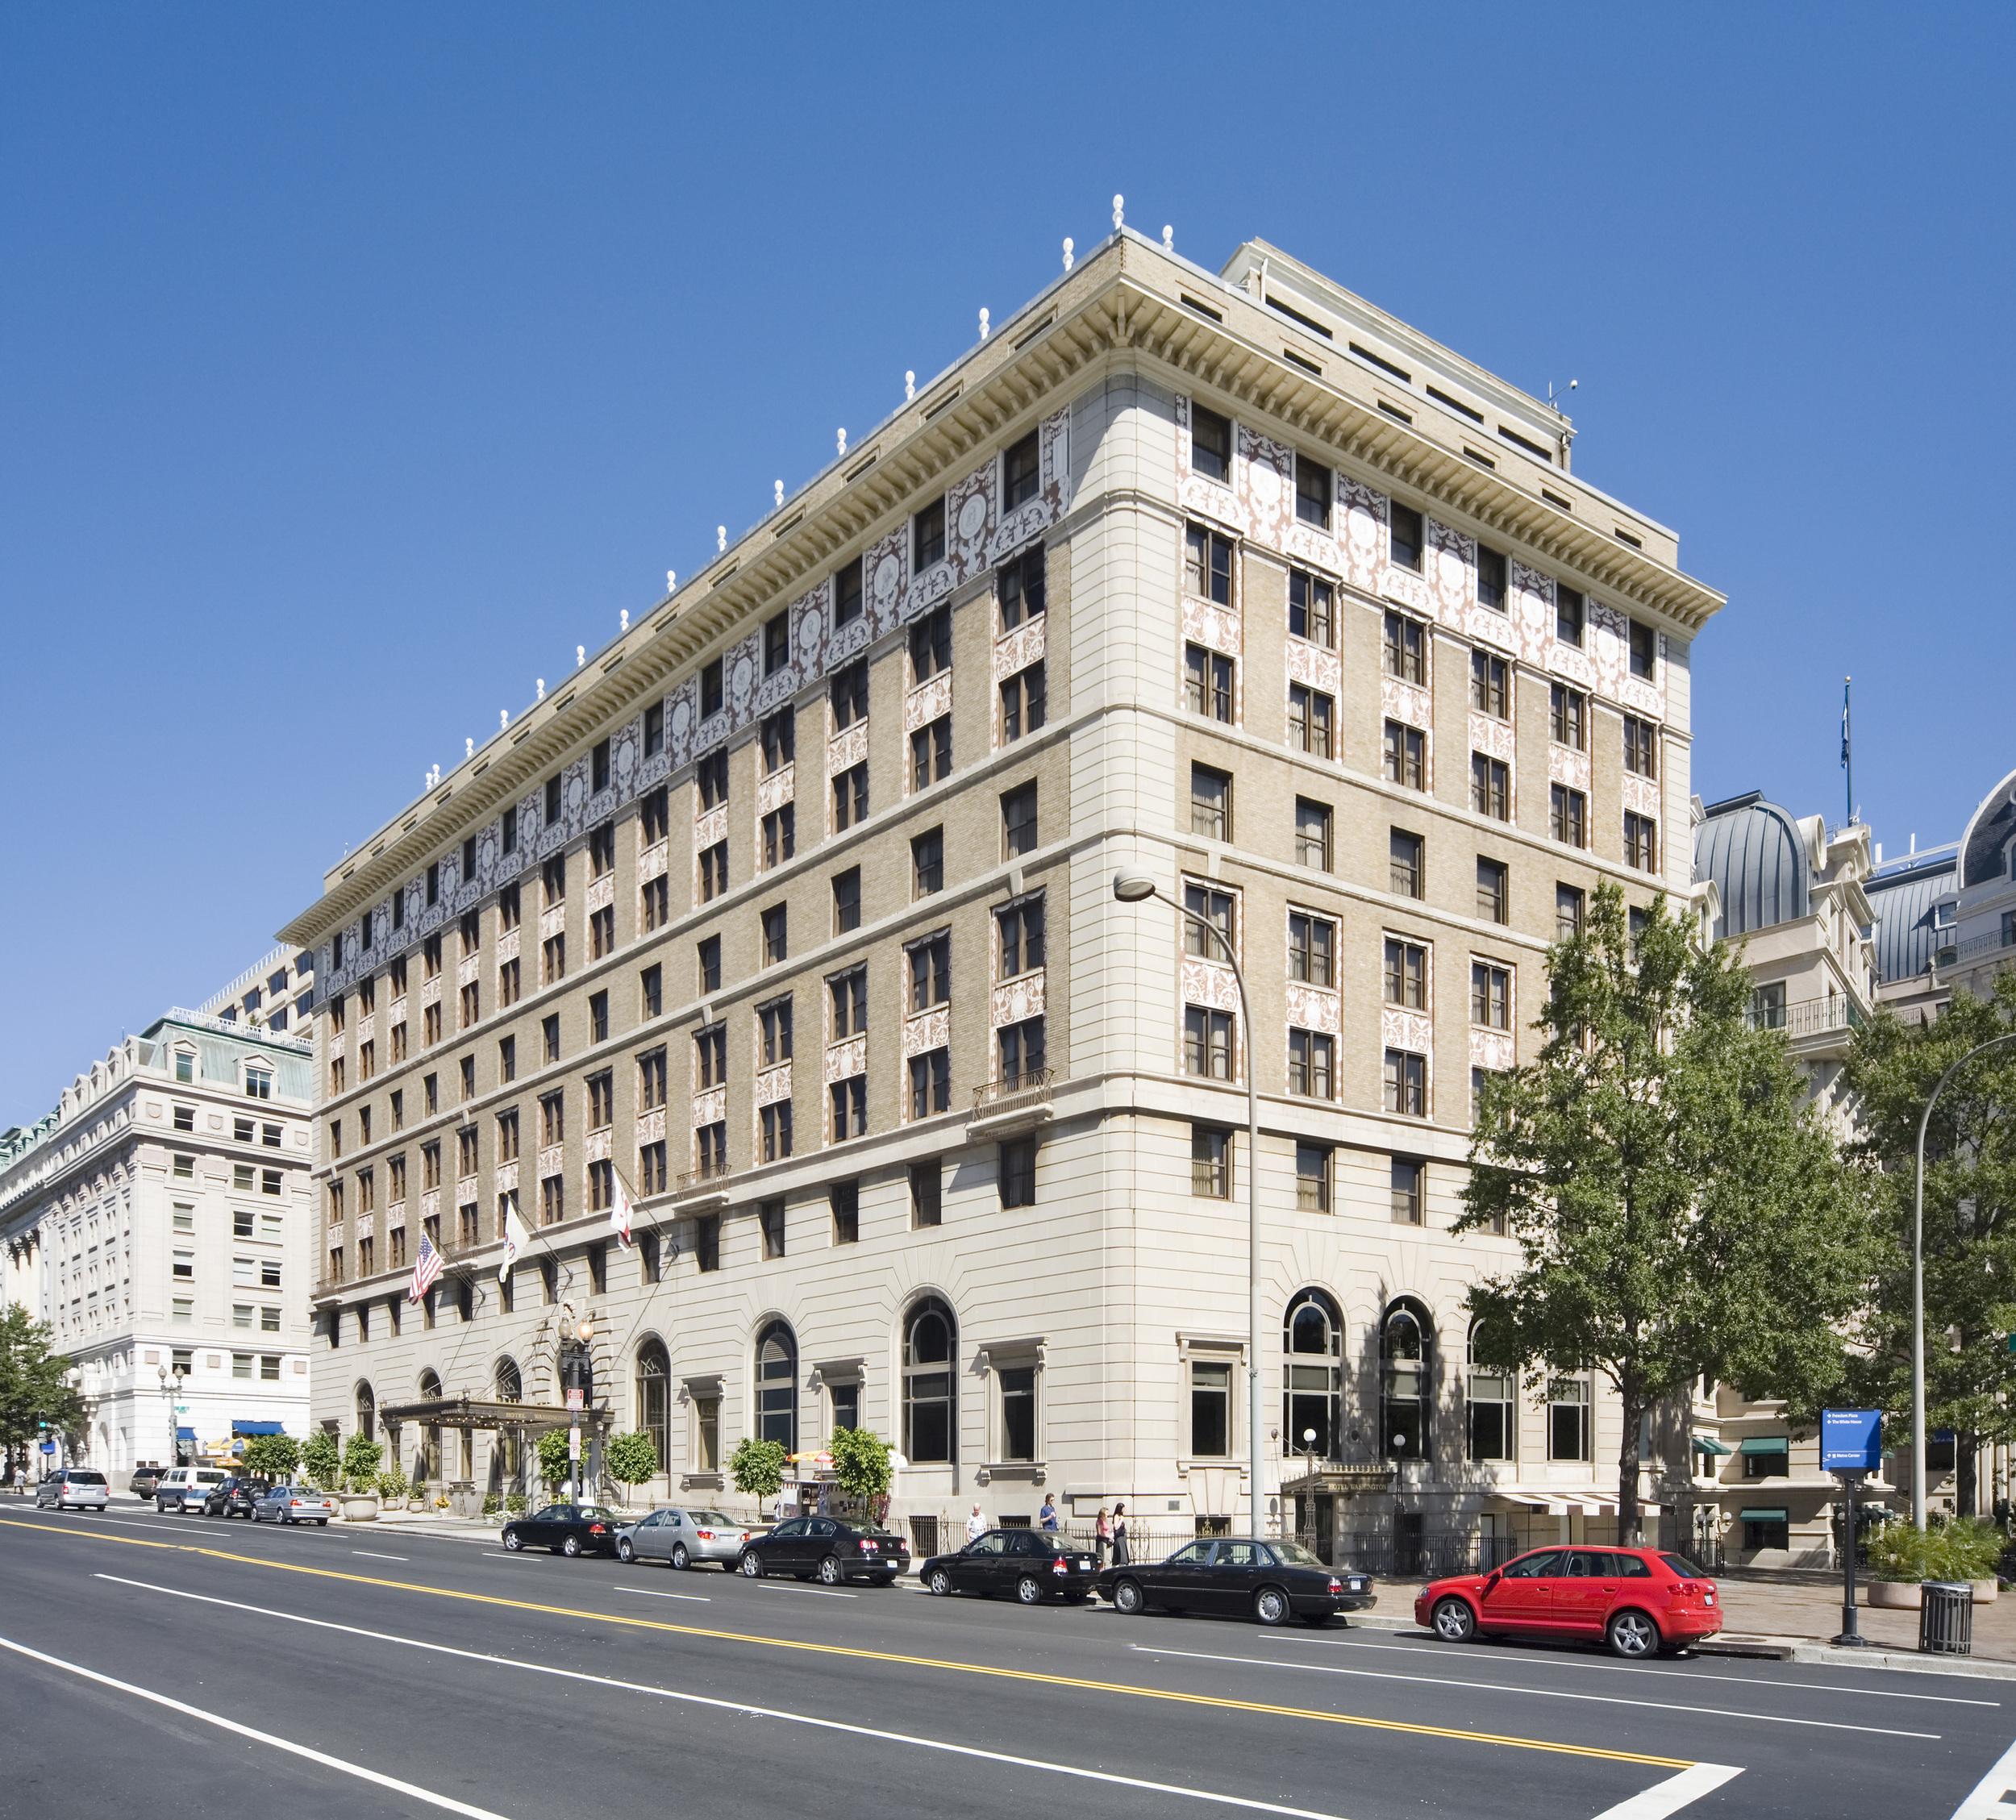 Hotel Washington, Washington DC 1.jpg